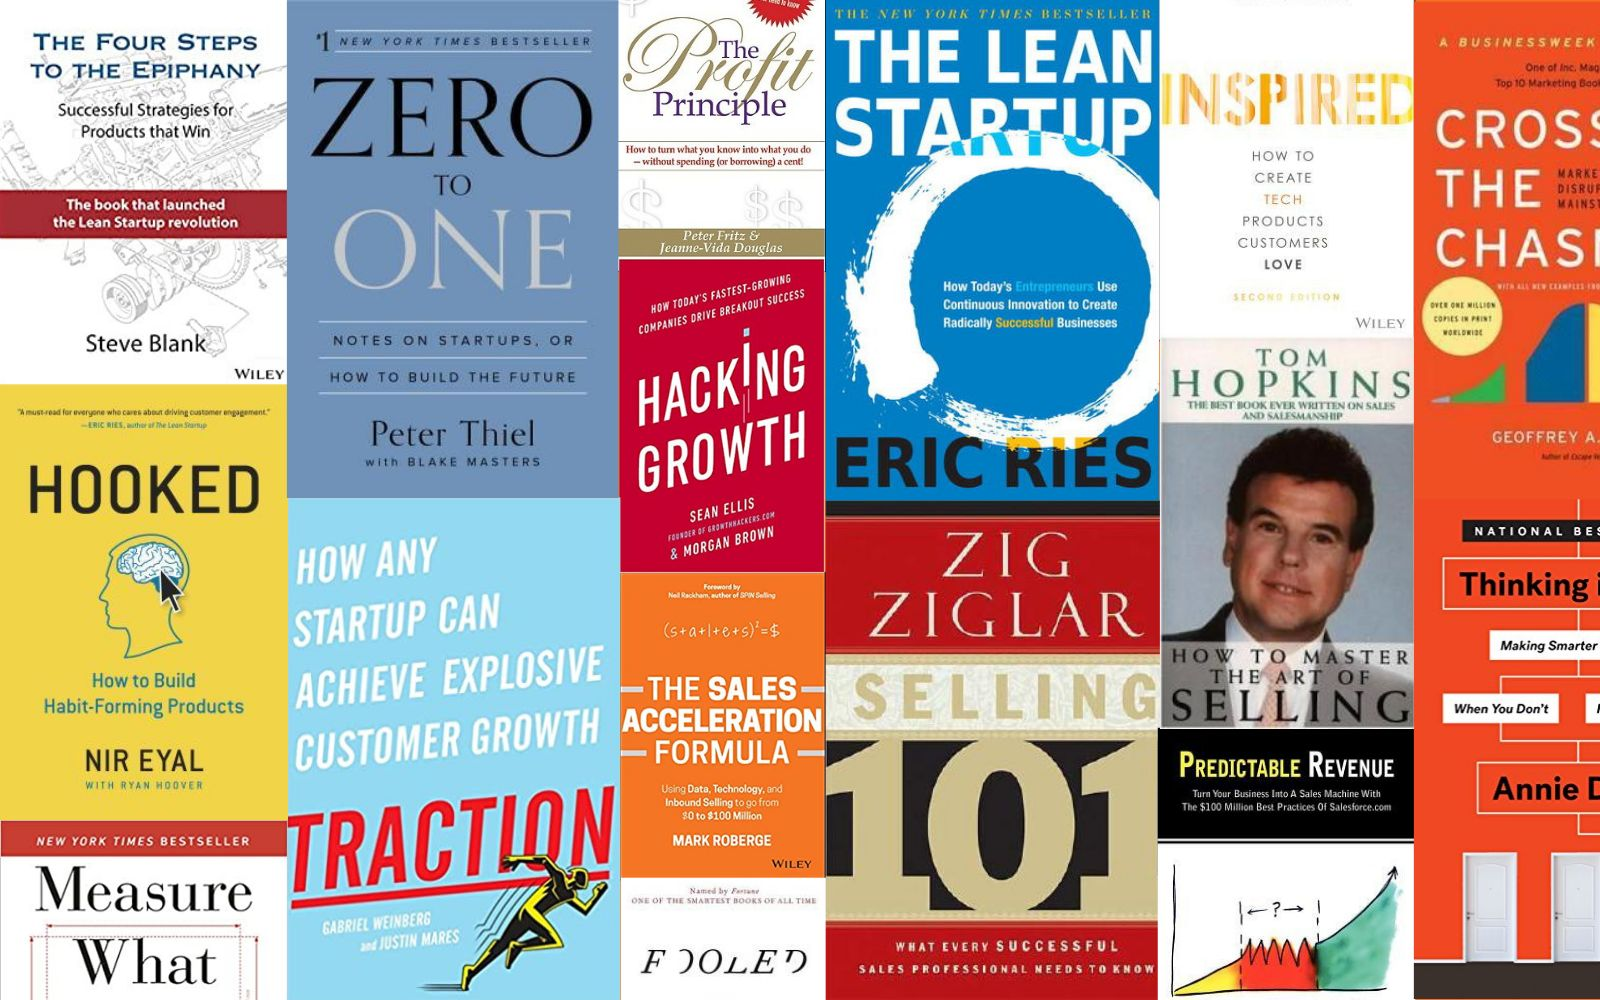 /getting-from-zero-to-one-must-read-books-for-building-new-product-ventures-sir33uv feature image